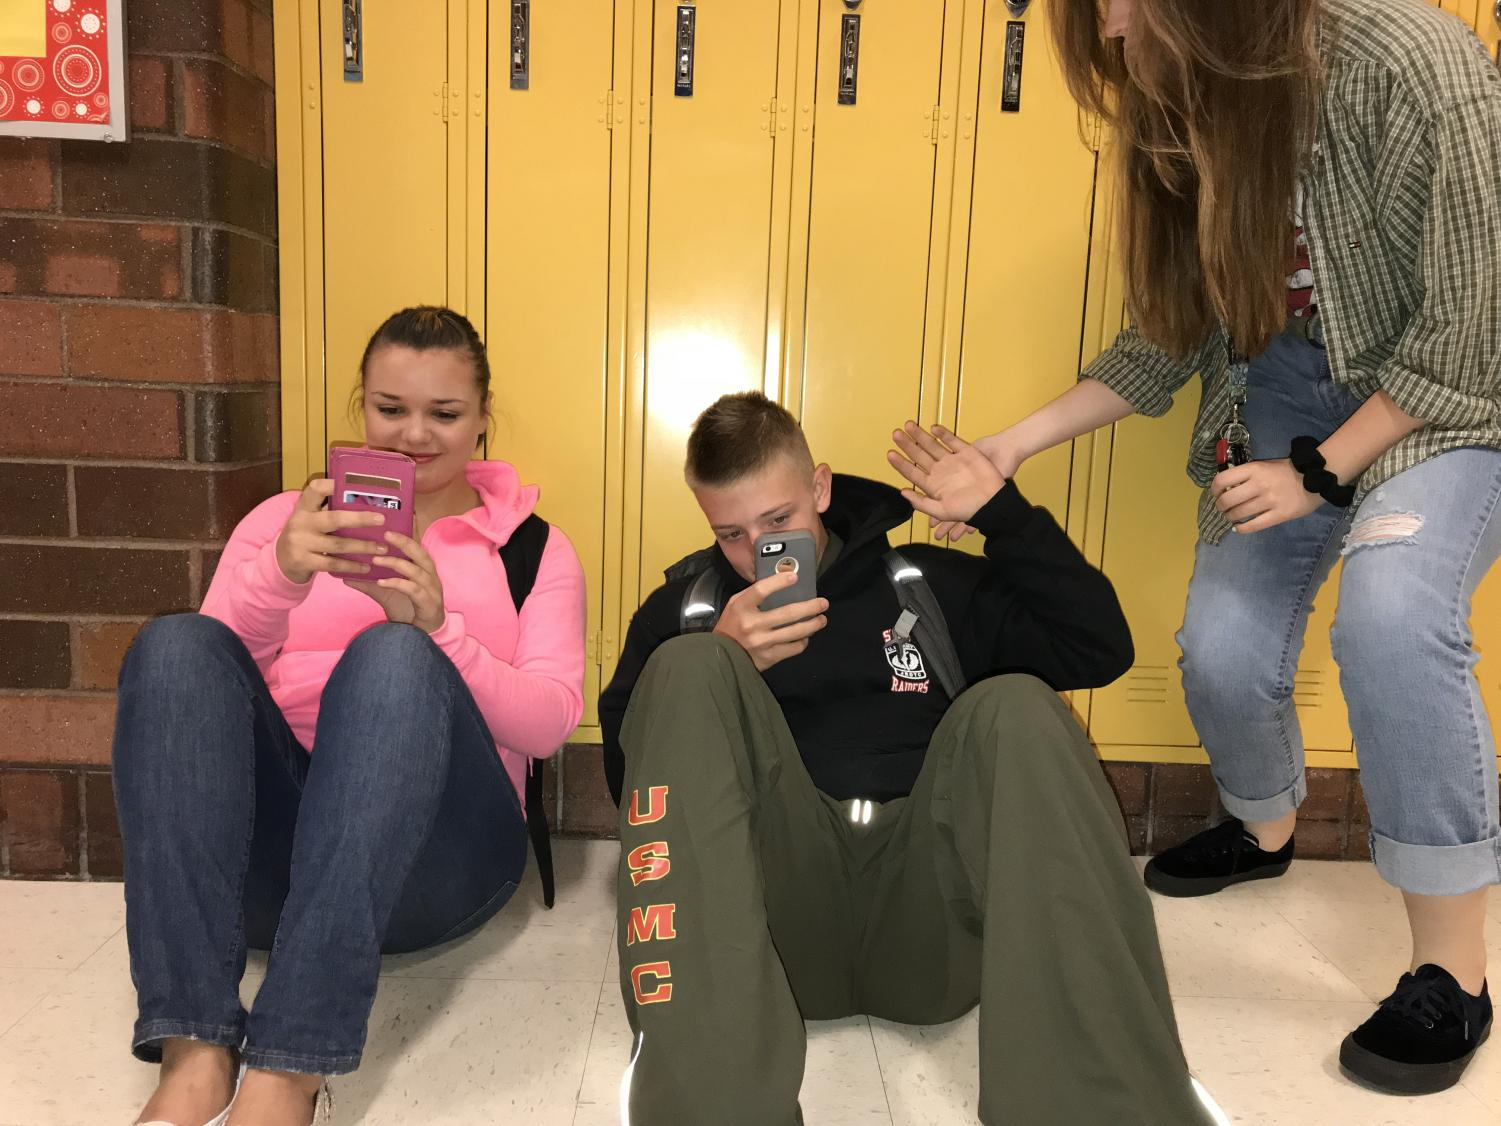 These students sit in the hallway on their phones, texting instead of interacting with one another.